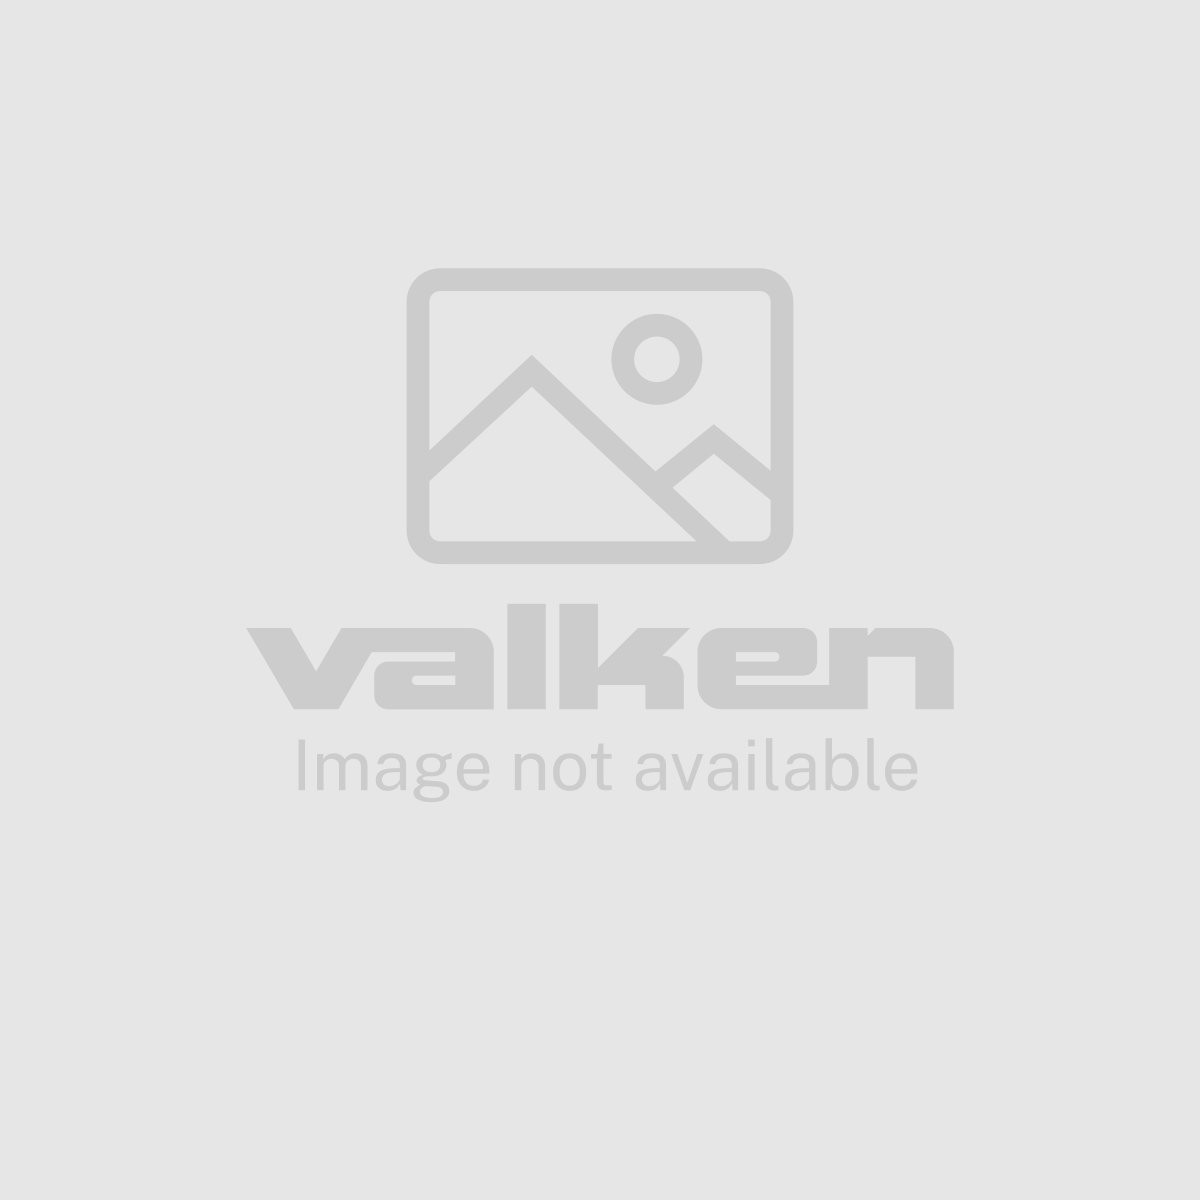 View larger image of Valken Phantom Backpack